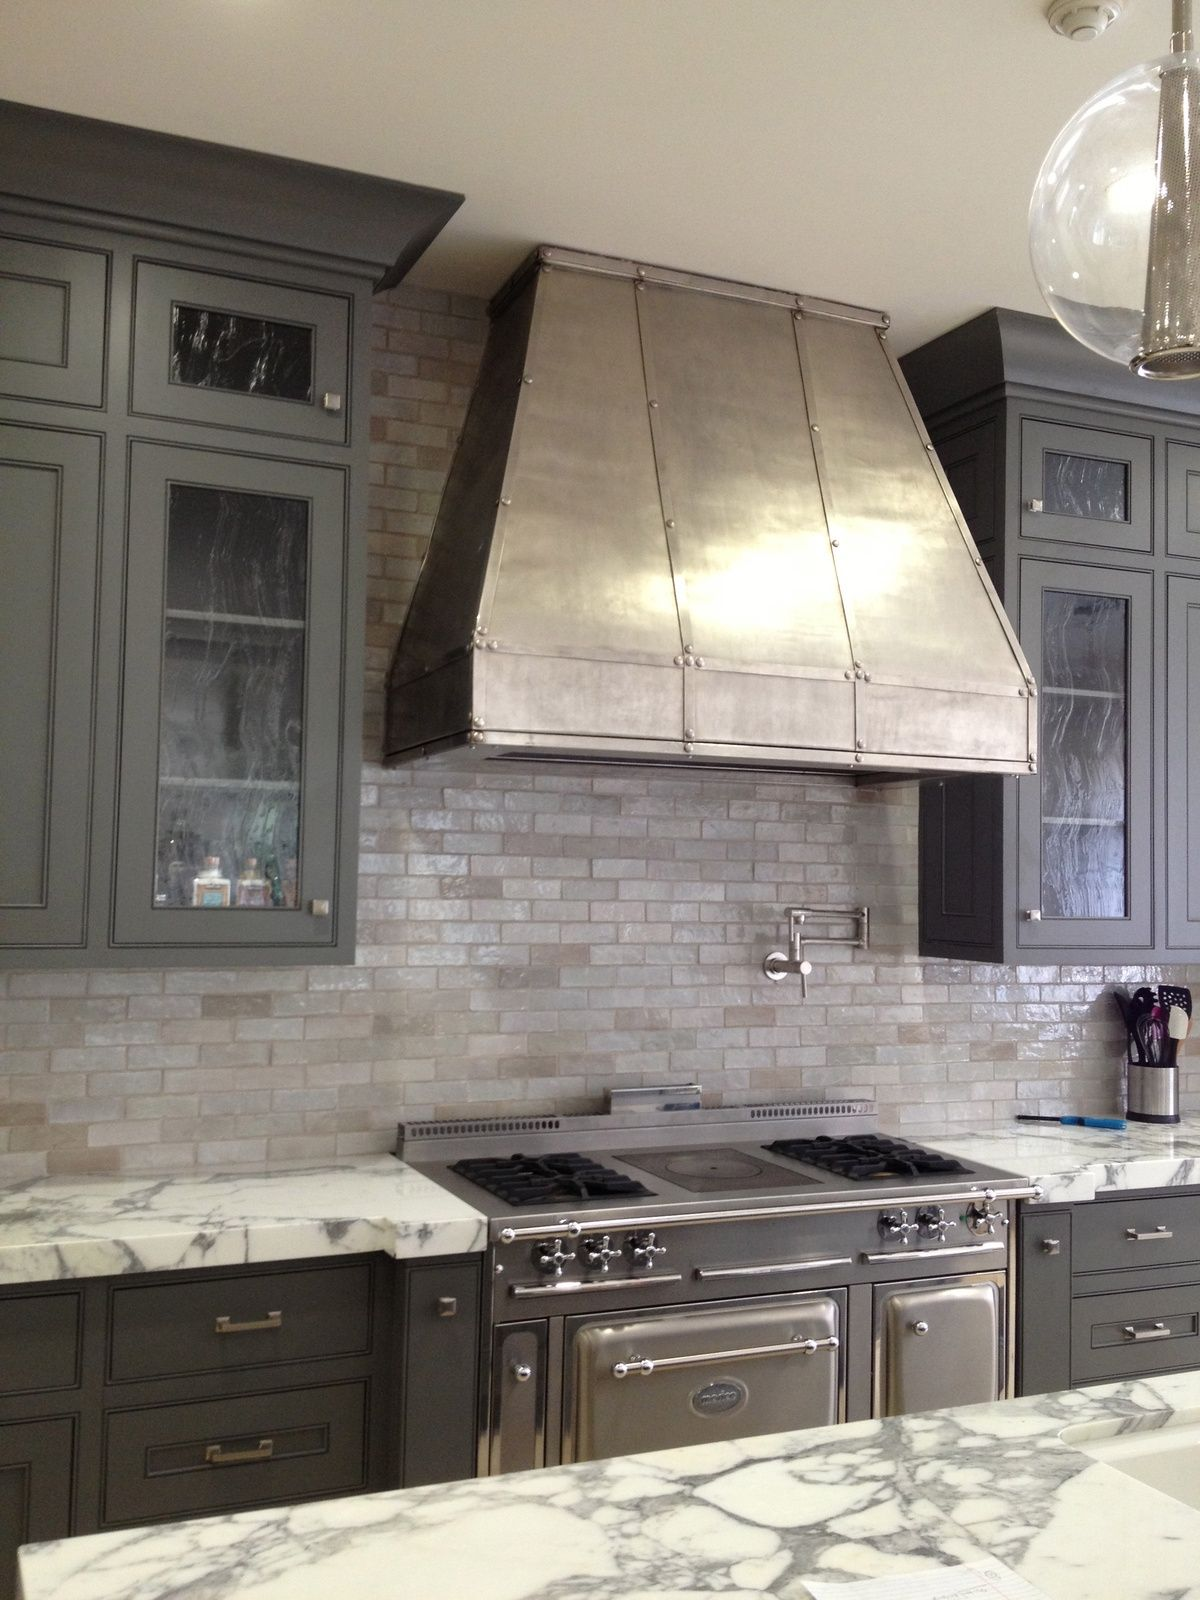 - Loving The Gray Neutrals On The Backsplash With The White And Gray